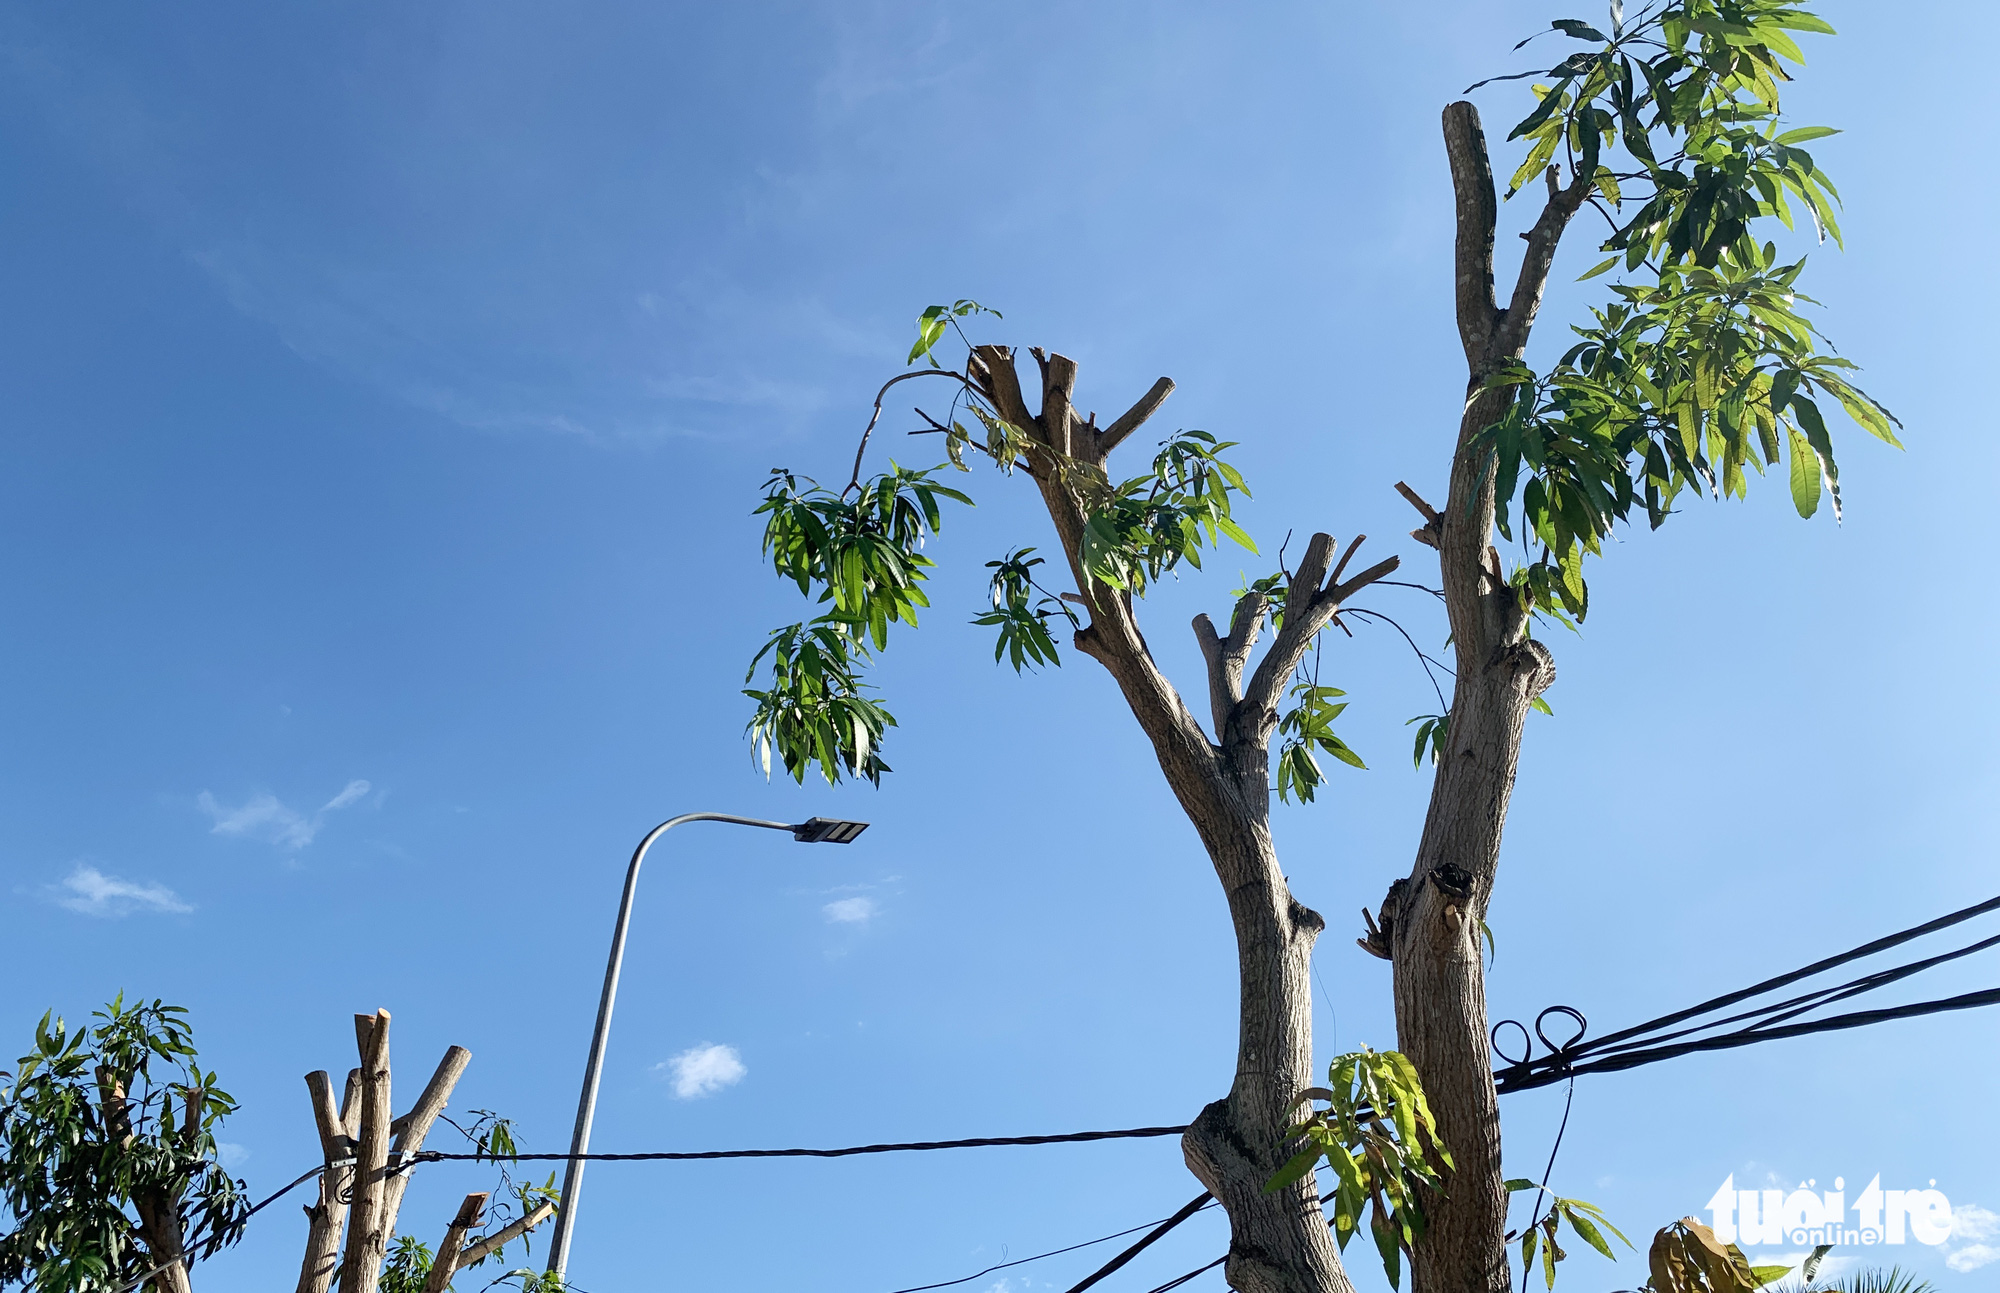 Mango trees are stripped bare in Vinh City, Nghe An Province, Vietnam. Photo: Doan Hoa / Tuoi Tre